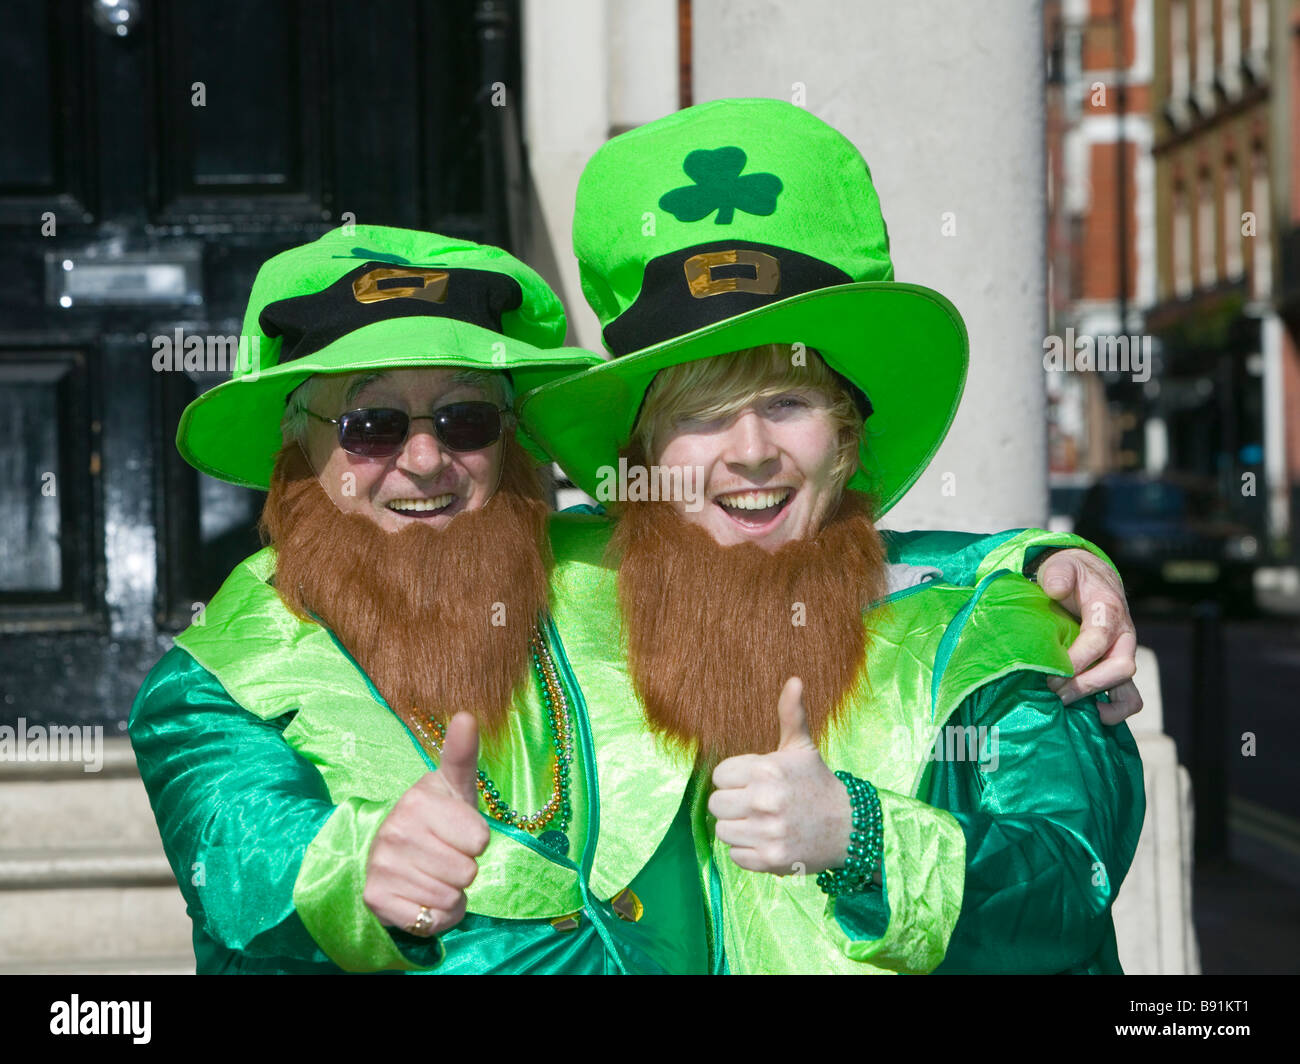 St Patricku0027s Day Parade - London 2009. Two men in Leprechaun costumes  sc 1 st  Alamy : leprechaun costumes for men  - Germanpascual.Com